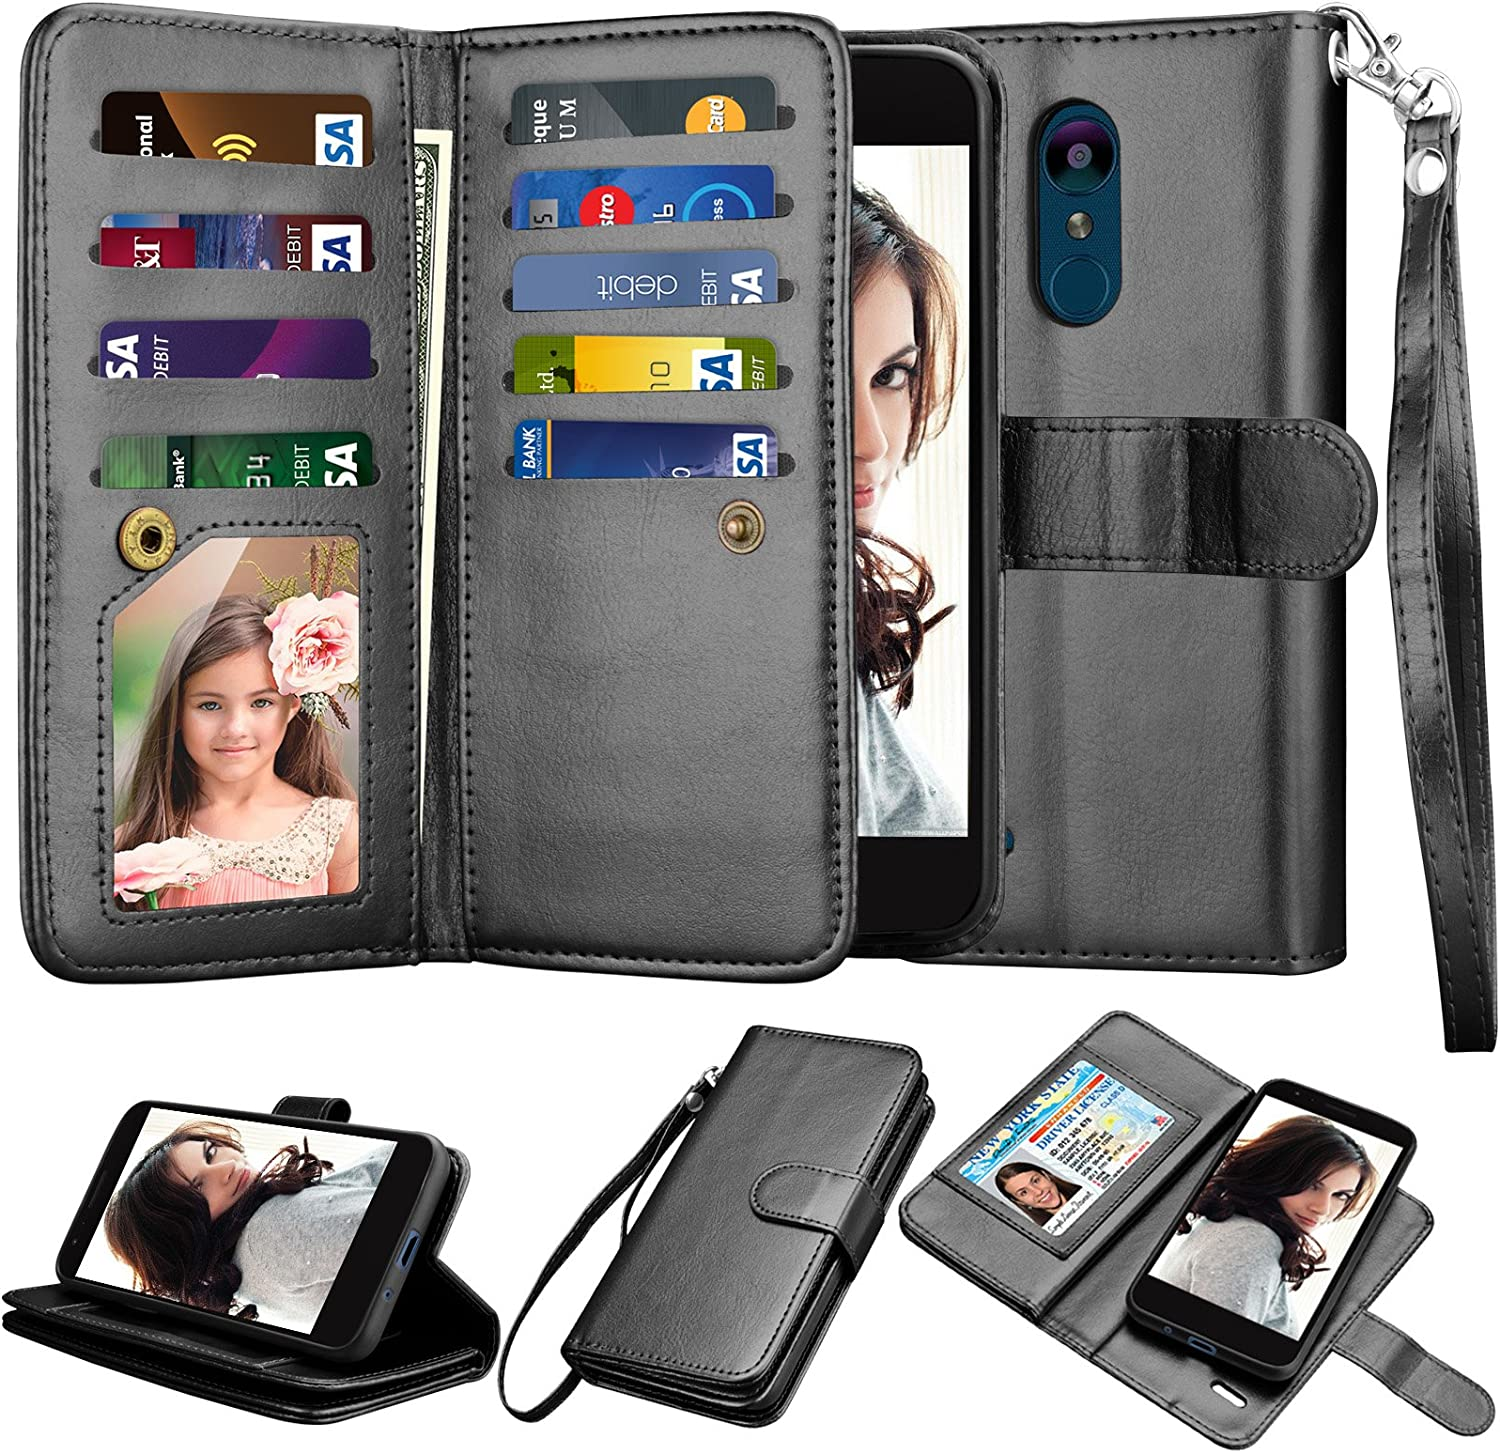 Njjex LG Aristo 2/Aristo 3/Phoenix 4/Rebel 4 LTE/Tribute Empire/Tribute Dynasty/Zone 4/Fortune 2/Rebel 3 LTE/Risio 3/K8 2018 Wallet Case, PU Leather Credit Card Slot Holder Flip Lanyard Cover [Black]